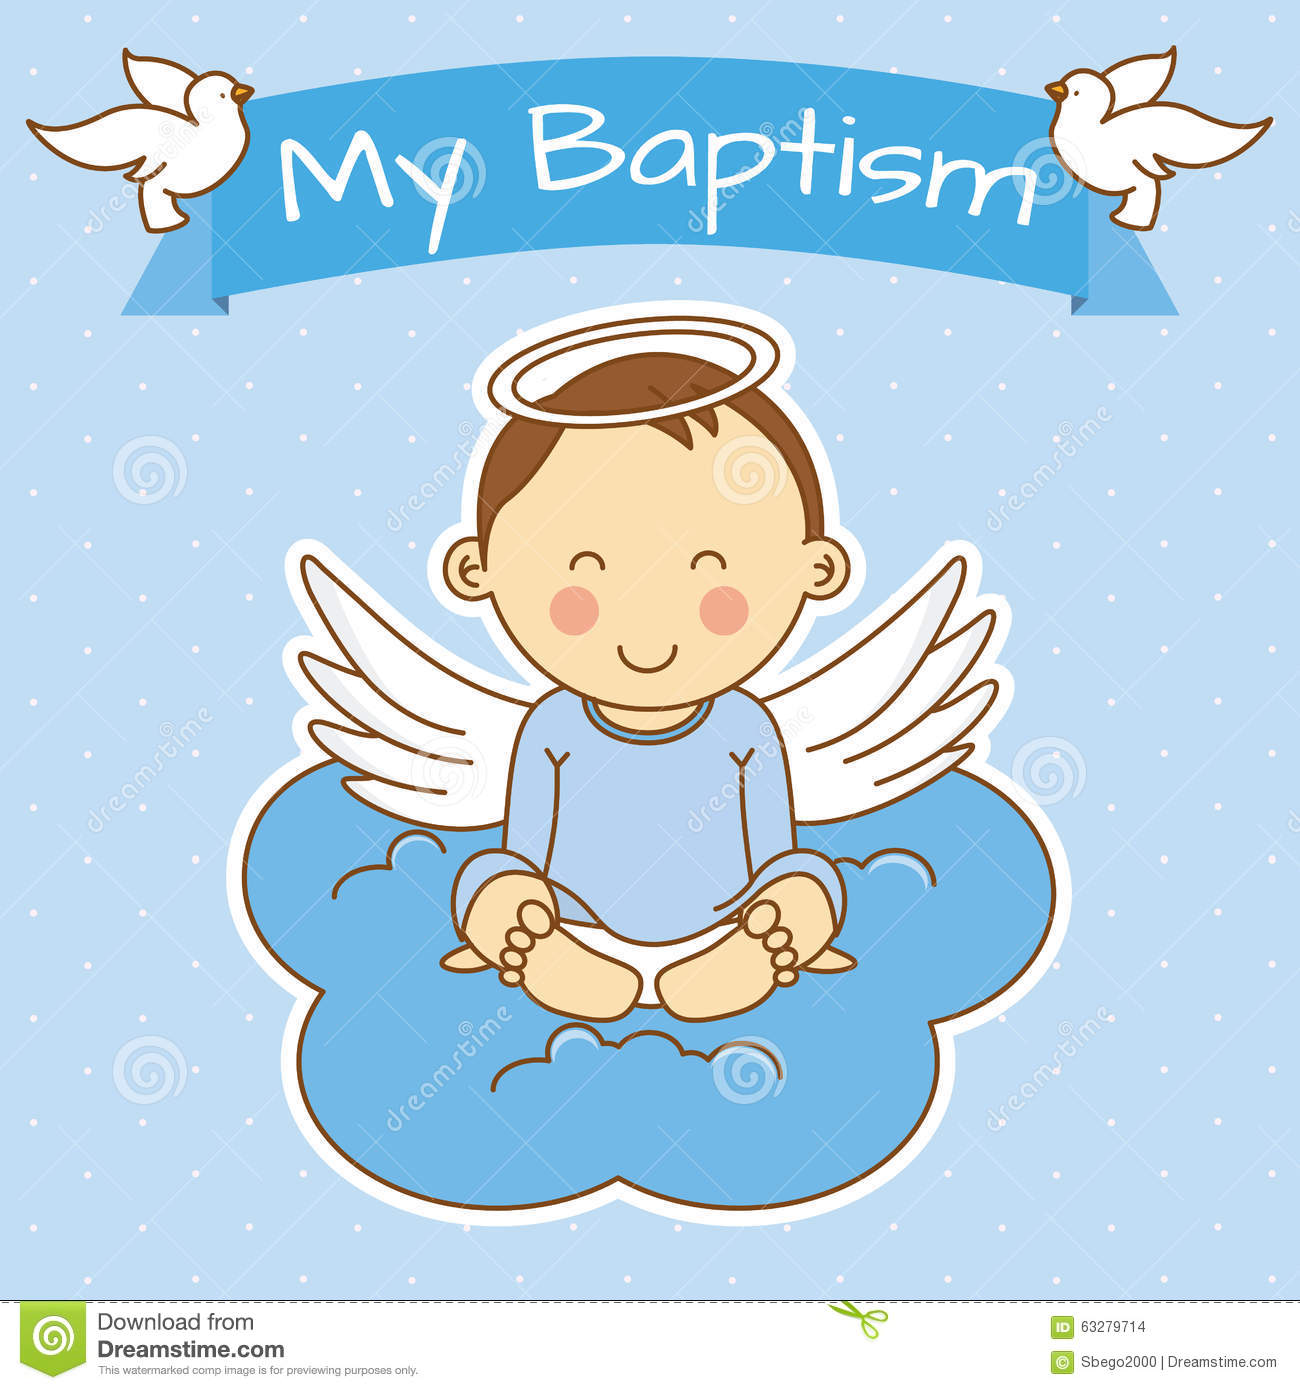 Girl Baptism Stock Vector - Image: 63279714